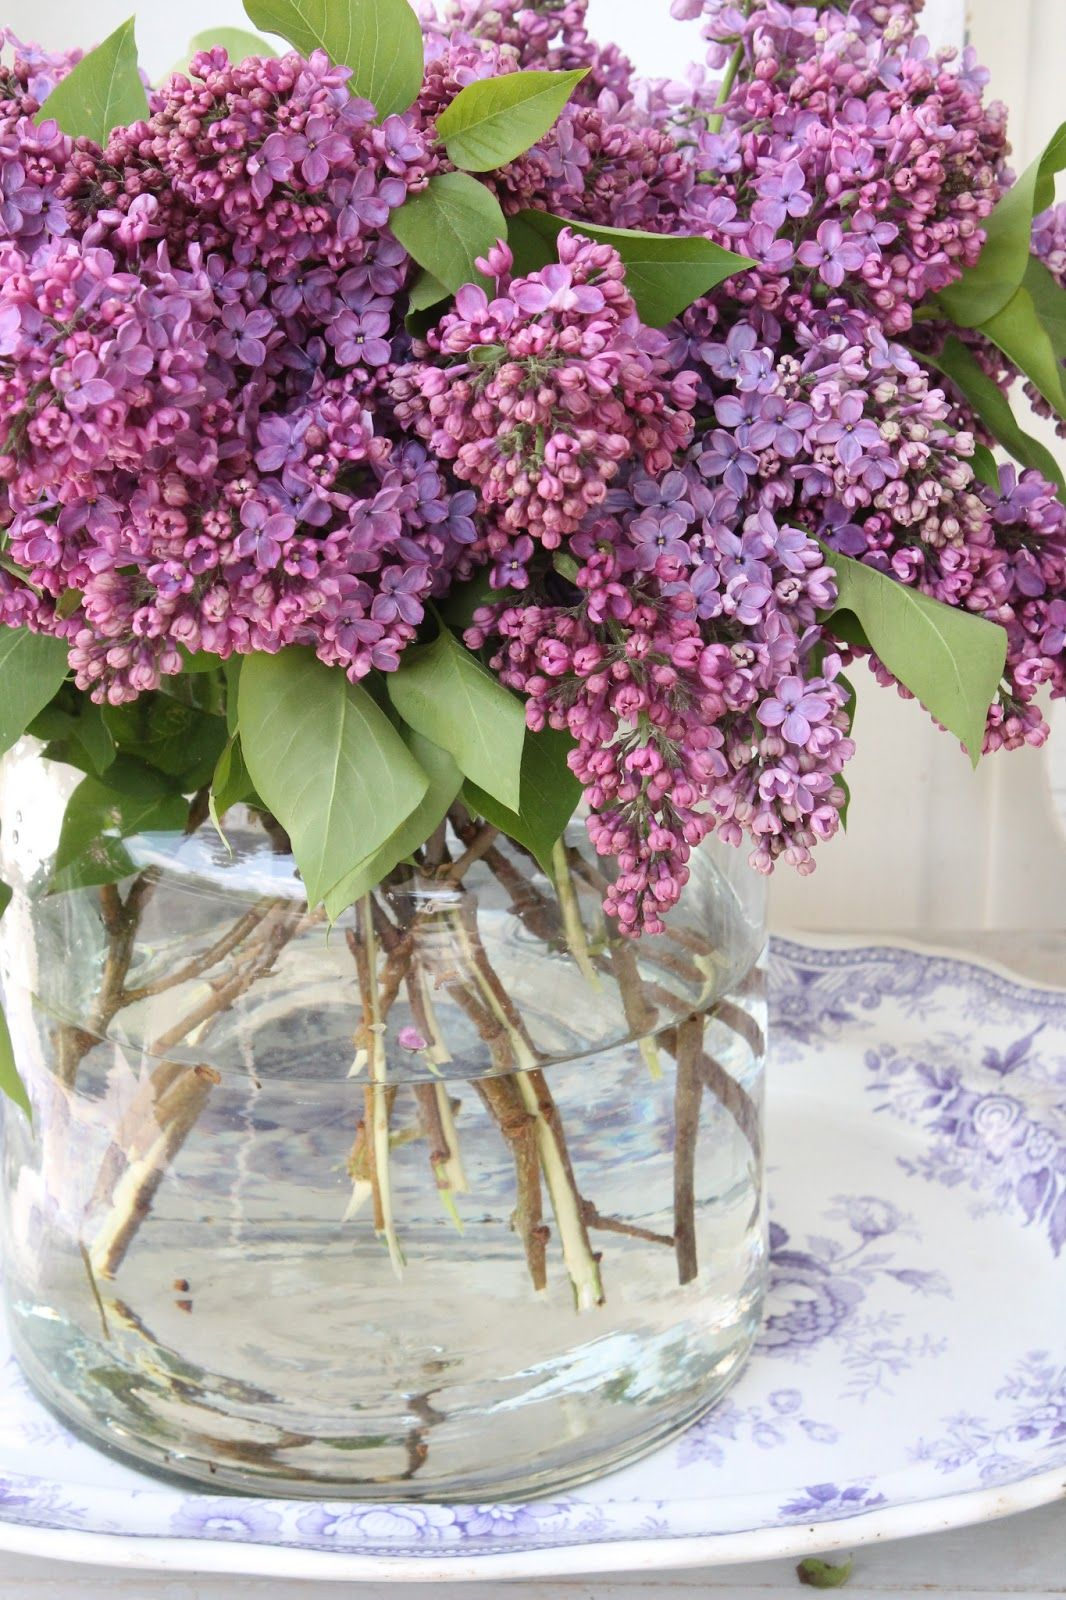 Now that the lilacs are in bloom she has a bowl of lilacs in her ...